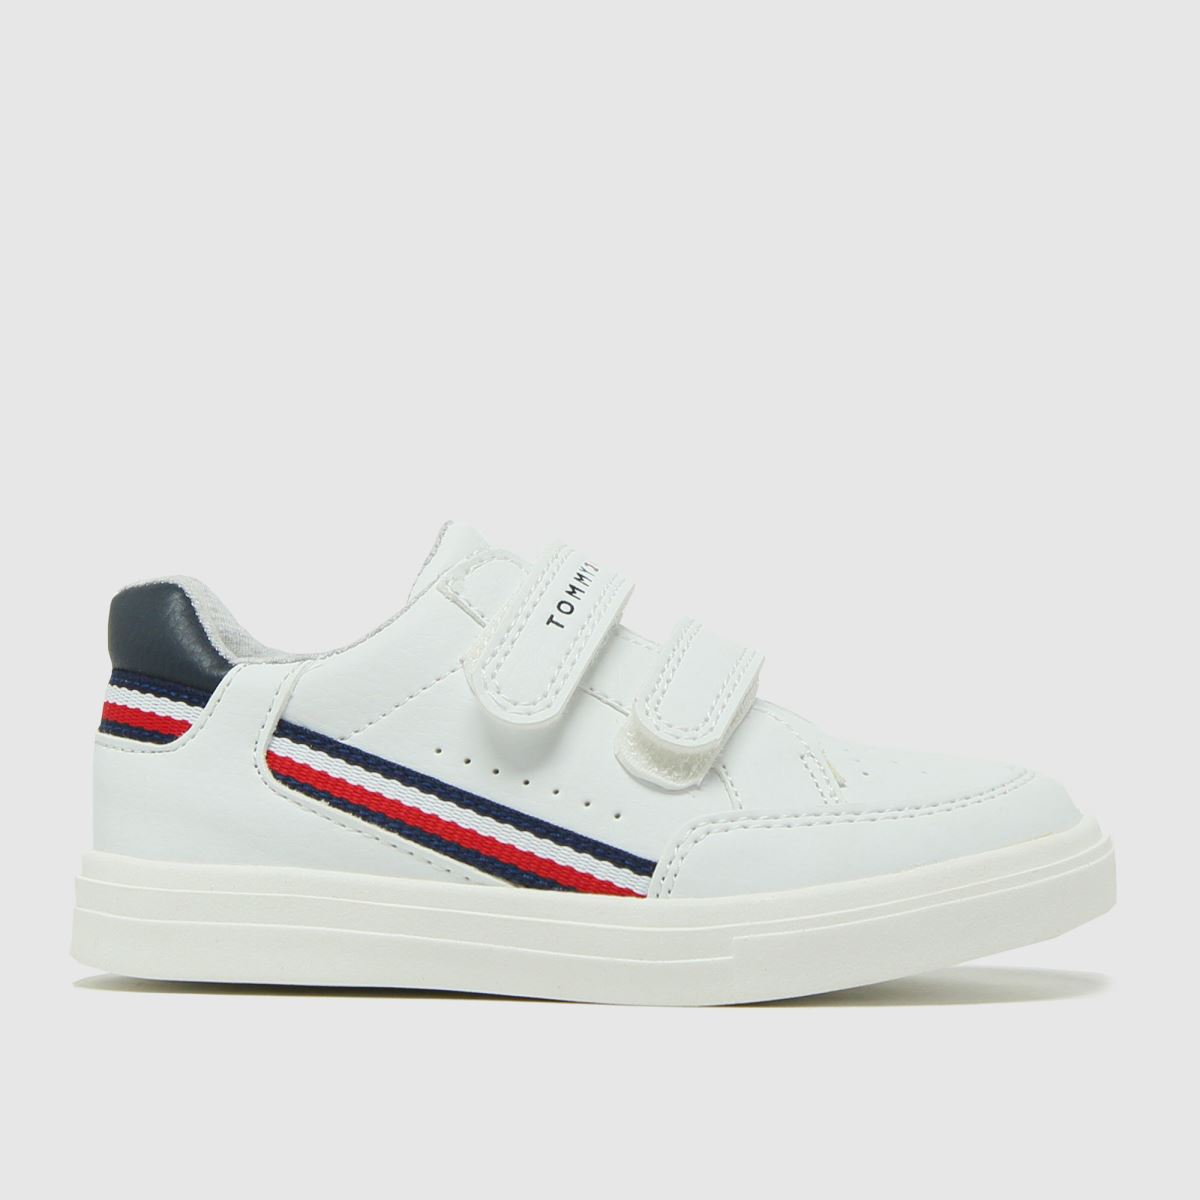 Tommy Hilfiger White & Navy Low Cut Velcro Sneaker Trainers Todd